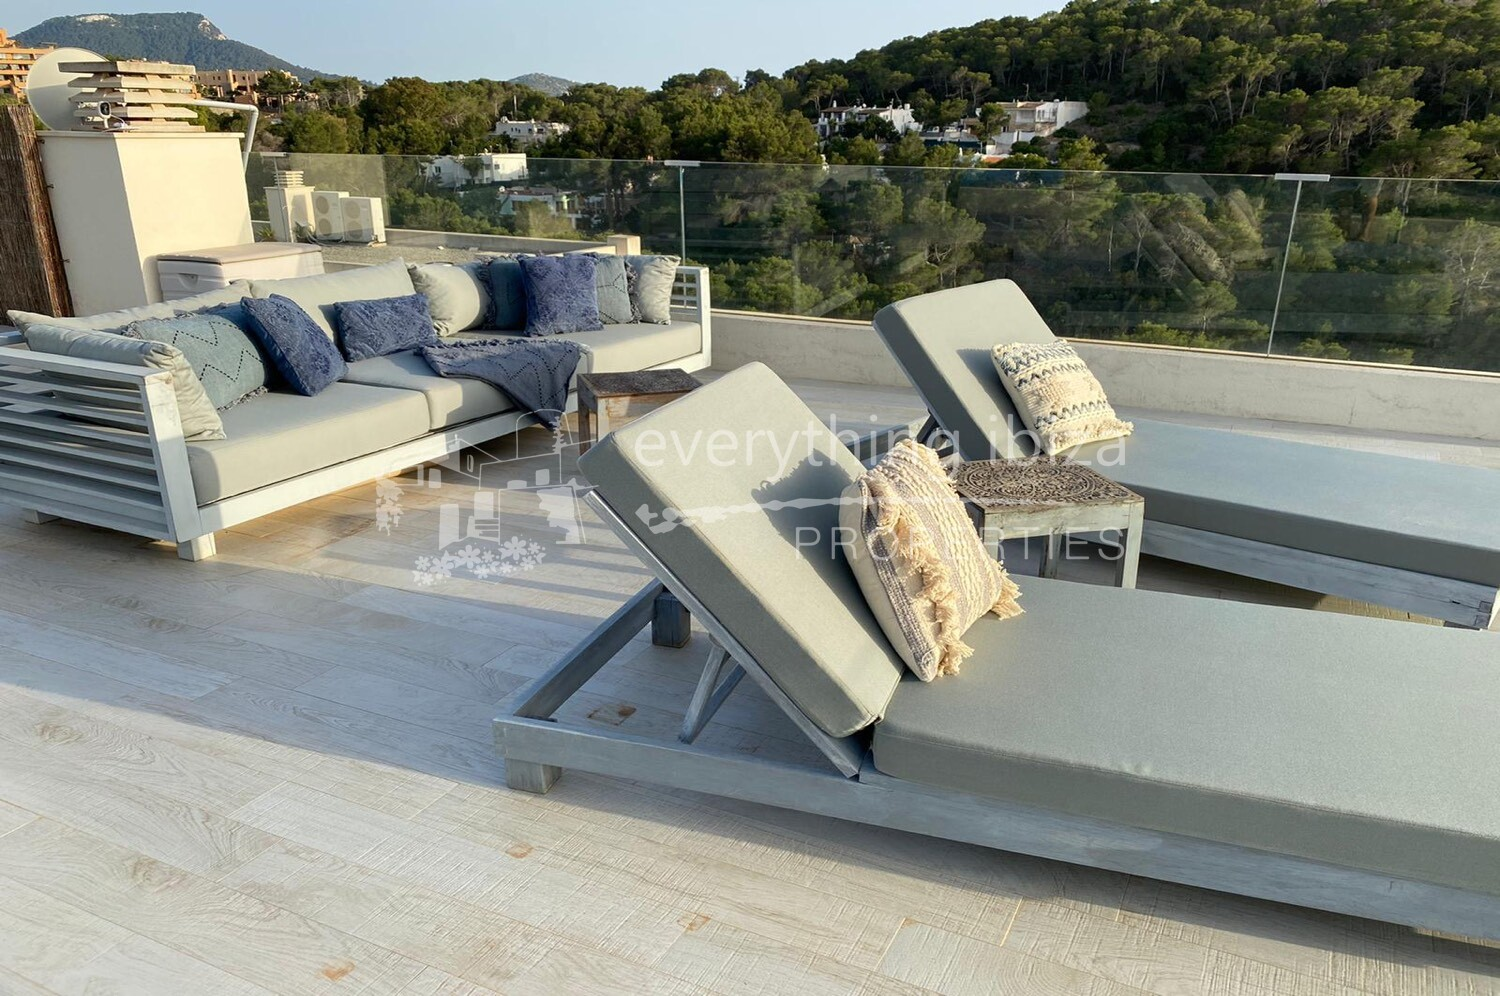 Magnificent Villa of Quality with Super Views, ref. 1365, for sale in Ibiza by everything ibiza Properties